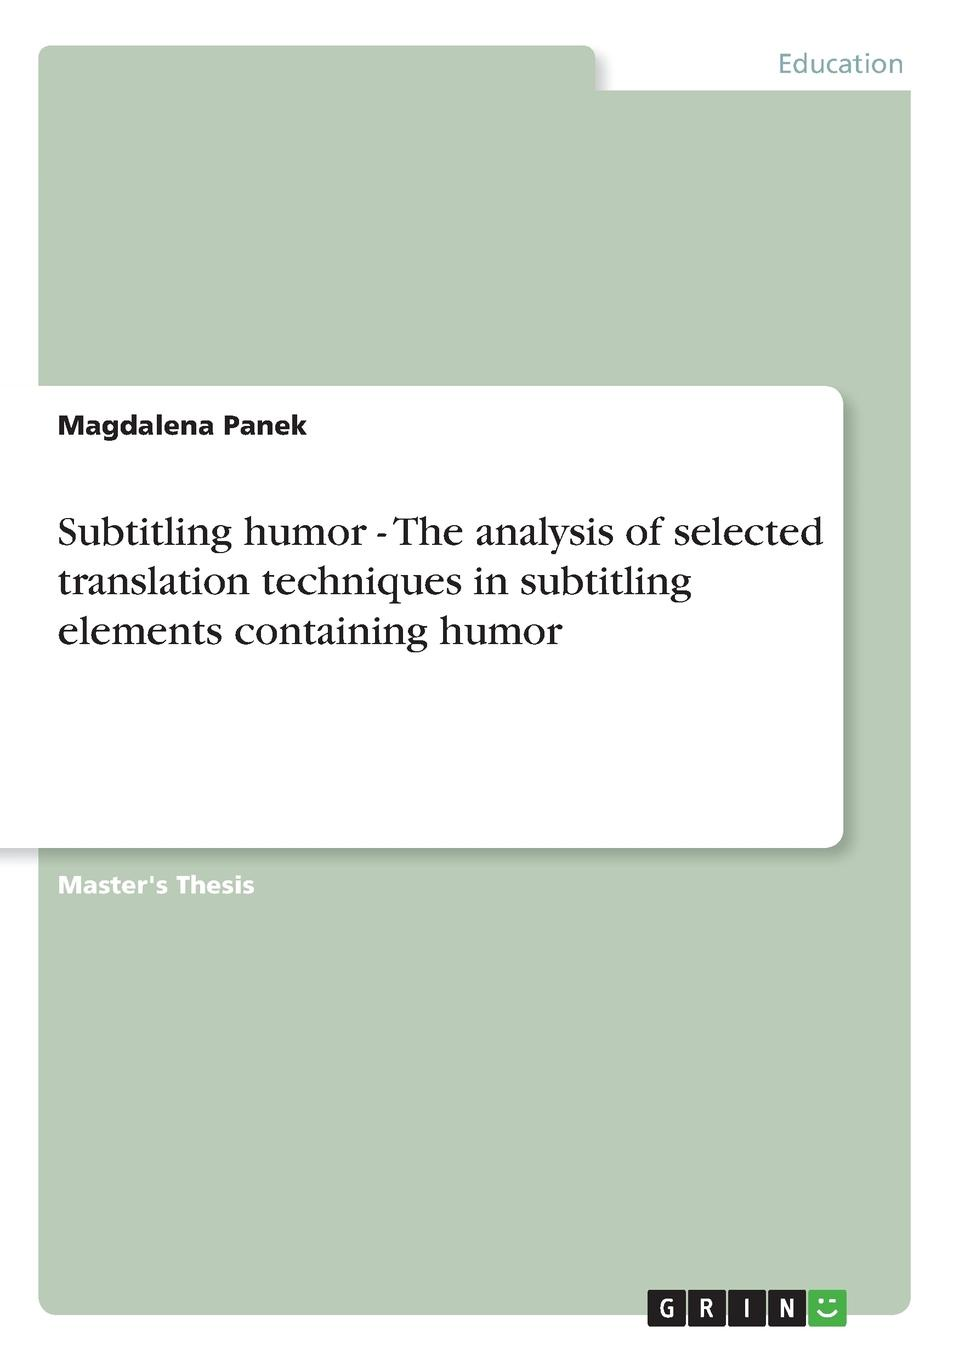 Magdalena Panek Subtitling humor - The analysis of selected translation techniques in subtitling elements containing humor axel honneth the i in we studies in the theory of recognition